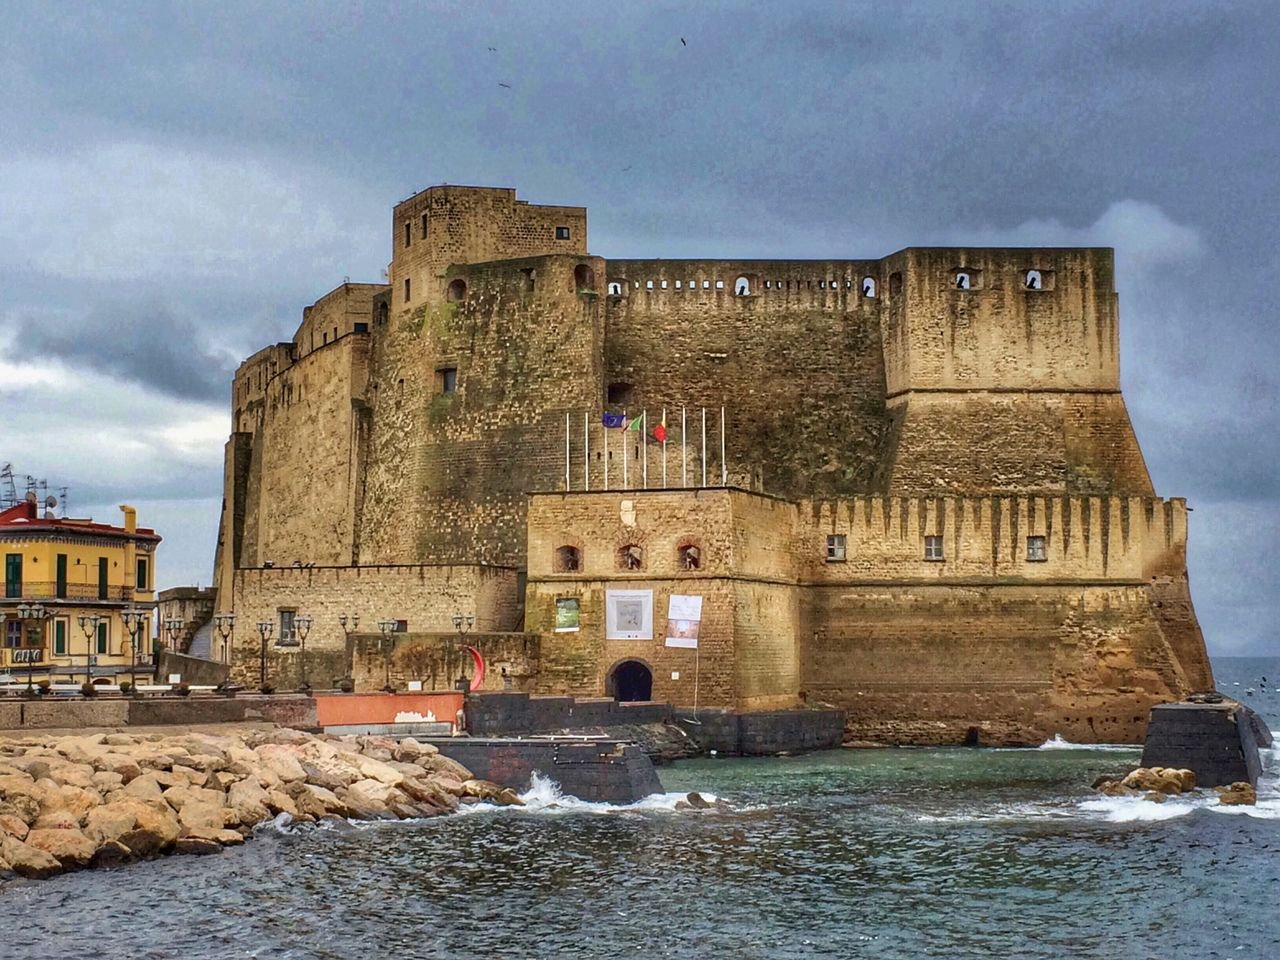 The Secret Spaces Castle Sea And Sky House View Naples, Italy Travel Photography Architecture Tourism No People Outdoors